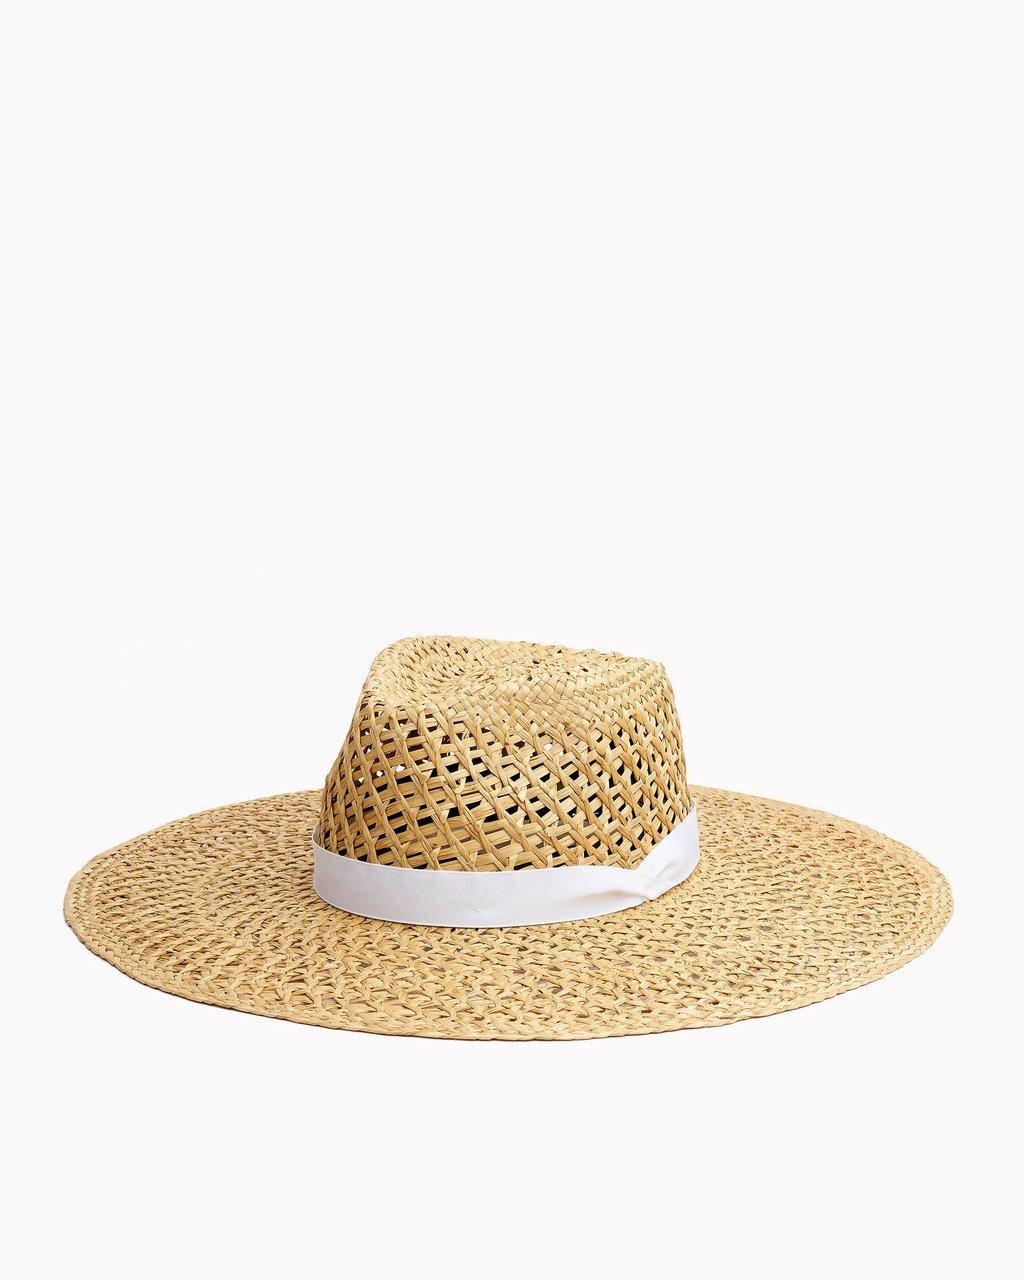 OPEN WEAVE WIDE BRIM HAT